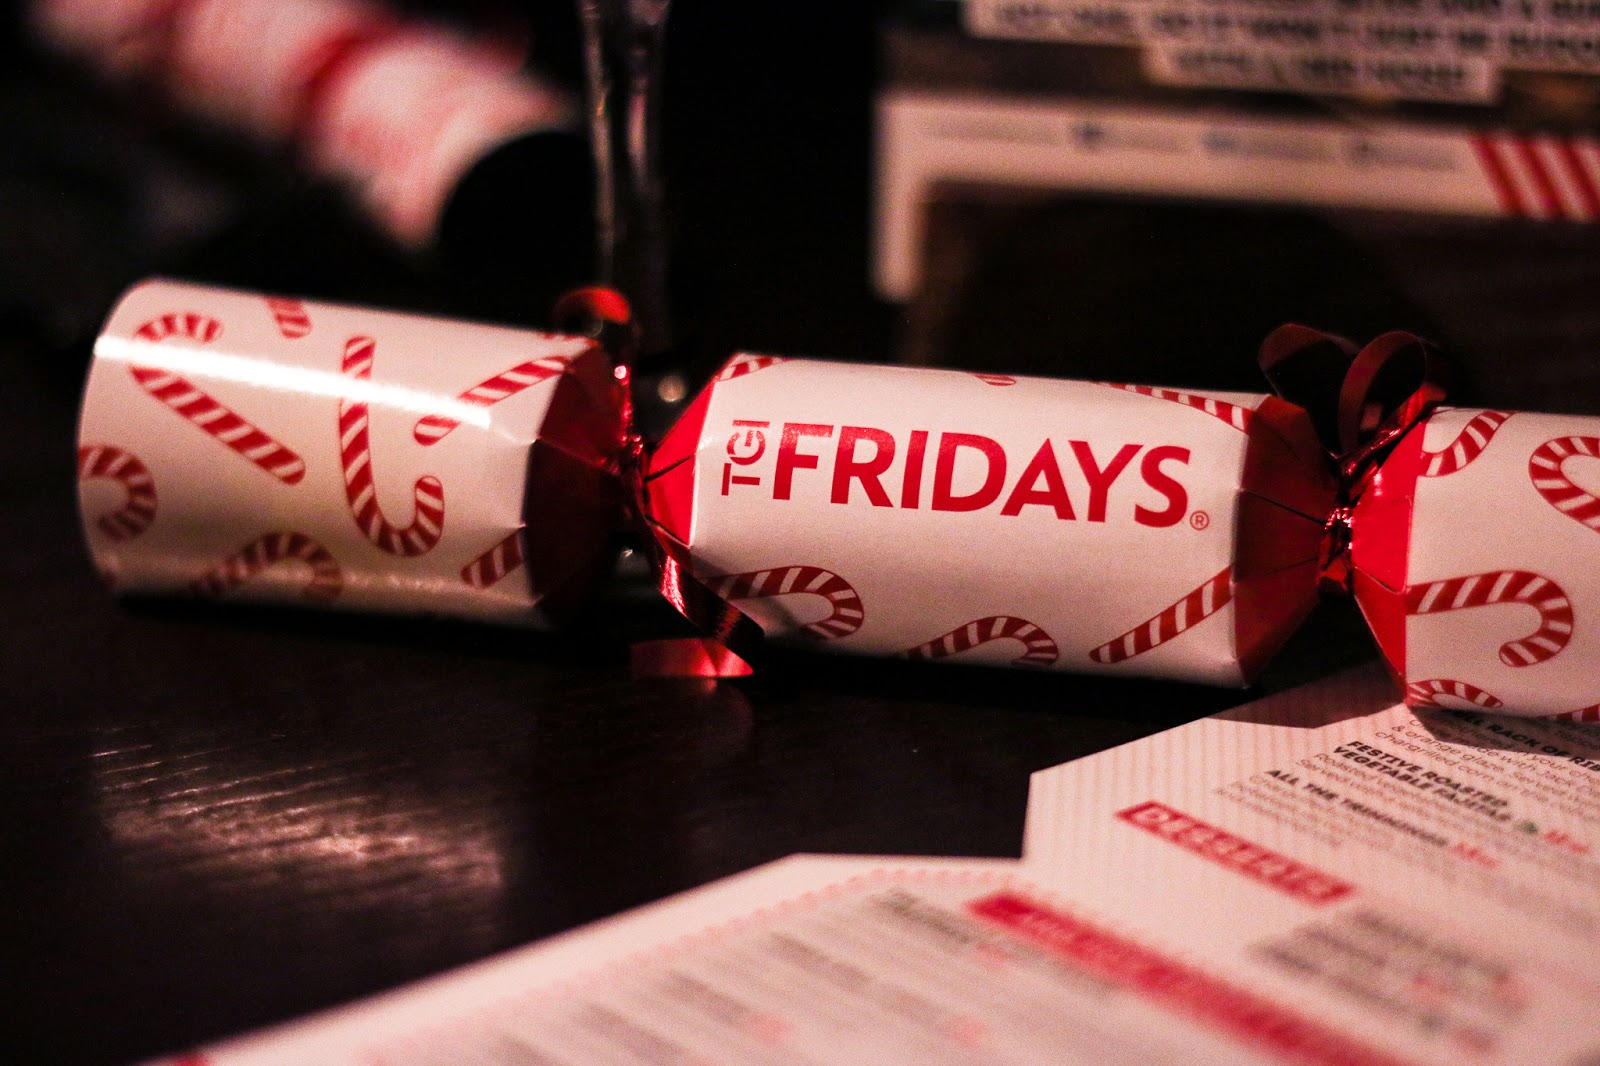 a red and white Christmas cracker on a table in TGI Fridays restaurant